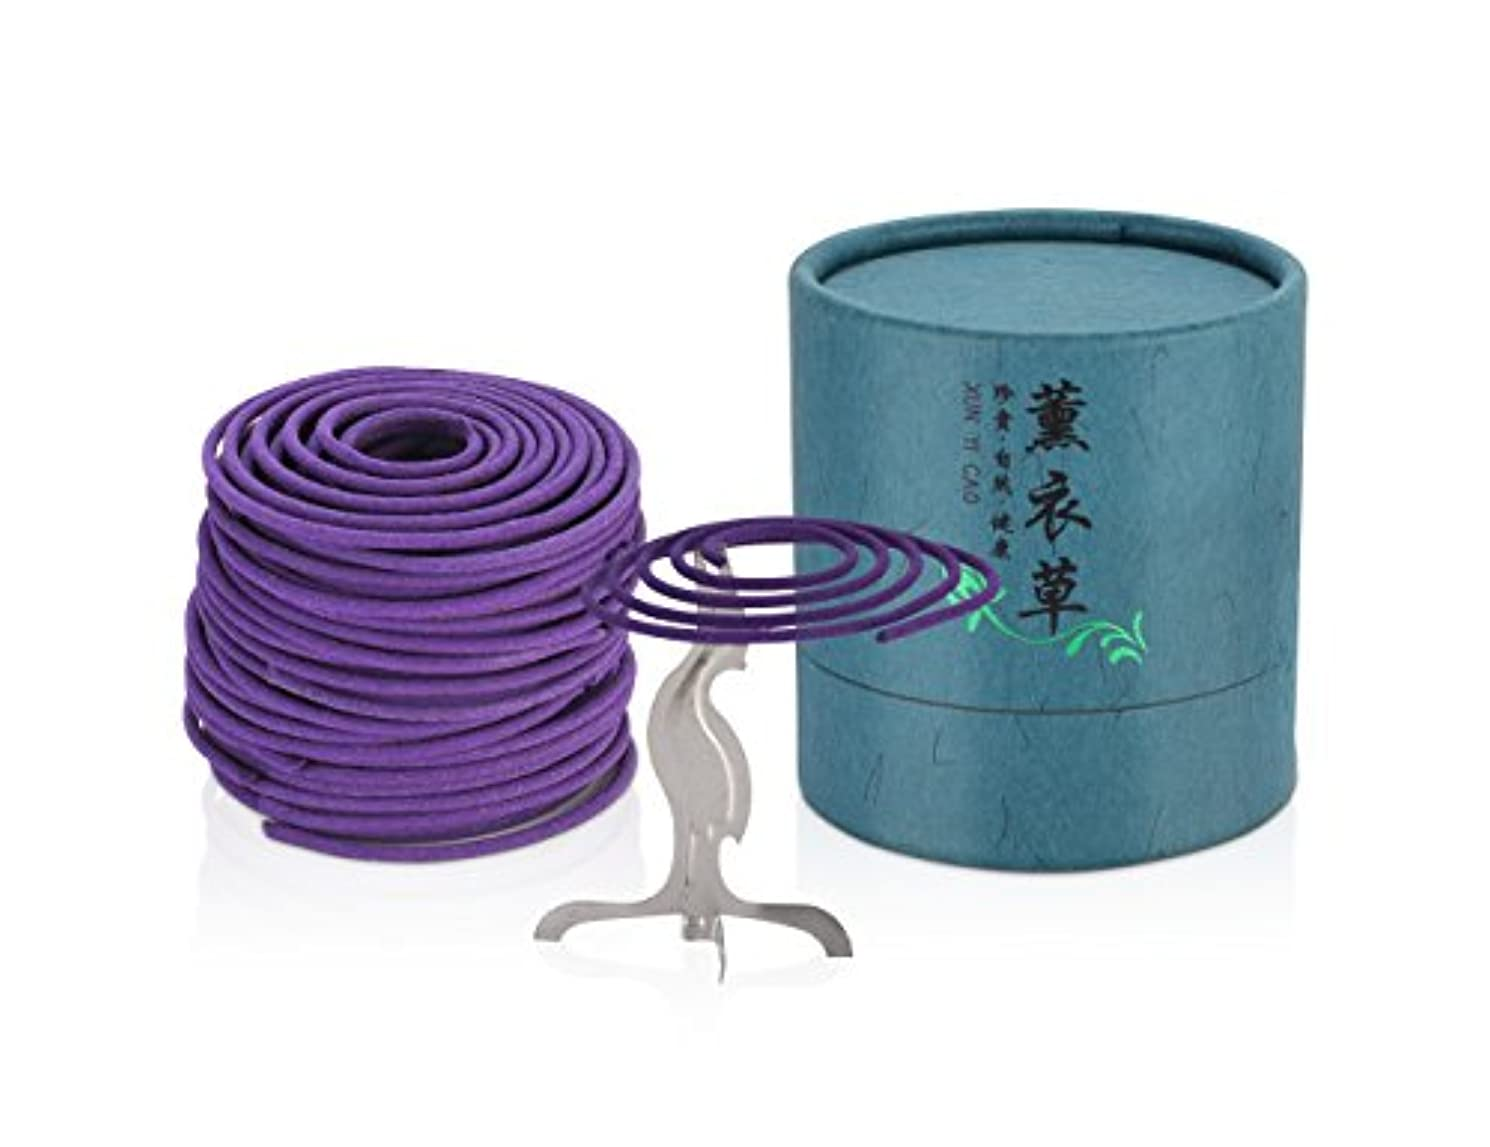 トレーニングリマークトリッキー(Lavender) - Xujia Lavender Incense Coils,Zen Buddhist Coils Incense for Burner